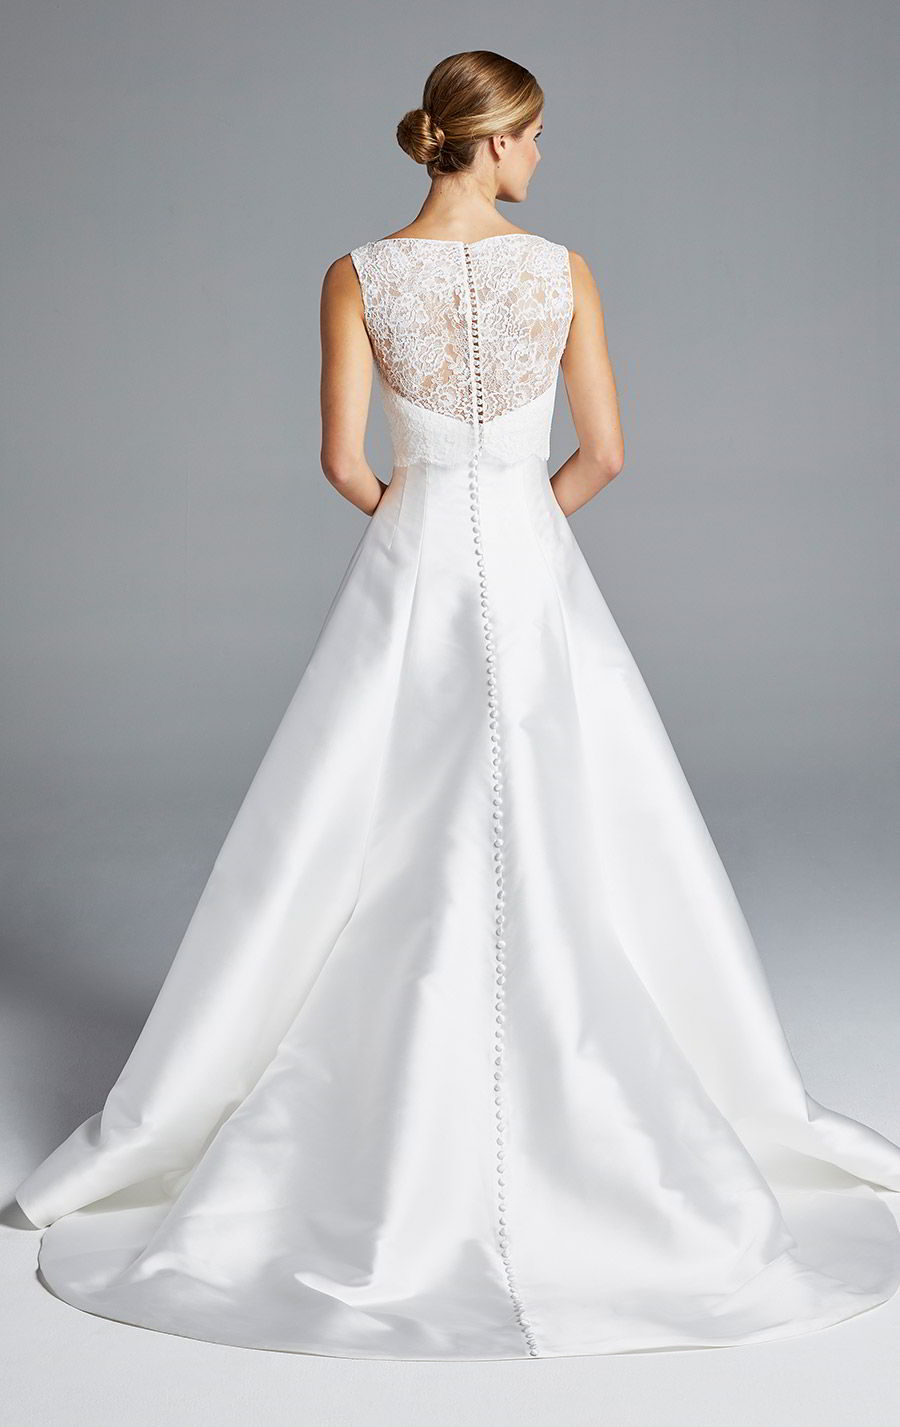 anne barge bridal spring 2019 strapless sweetheart clean a line high low wedding dress sleeveless lace top bateau neck (mindy) bv modern chic